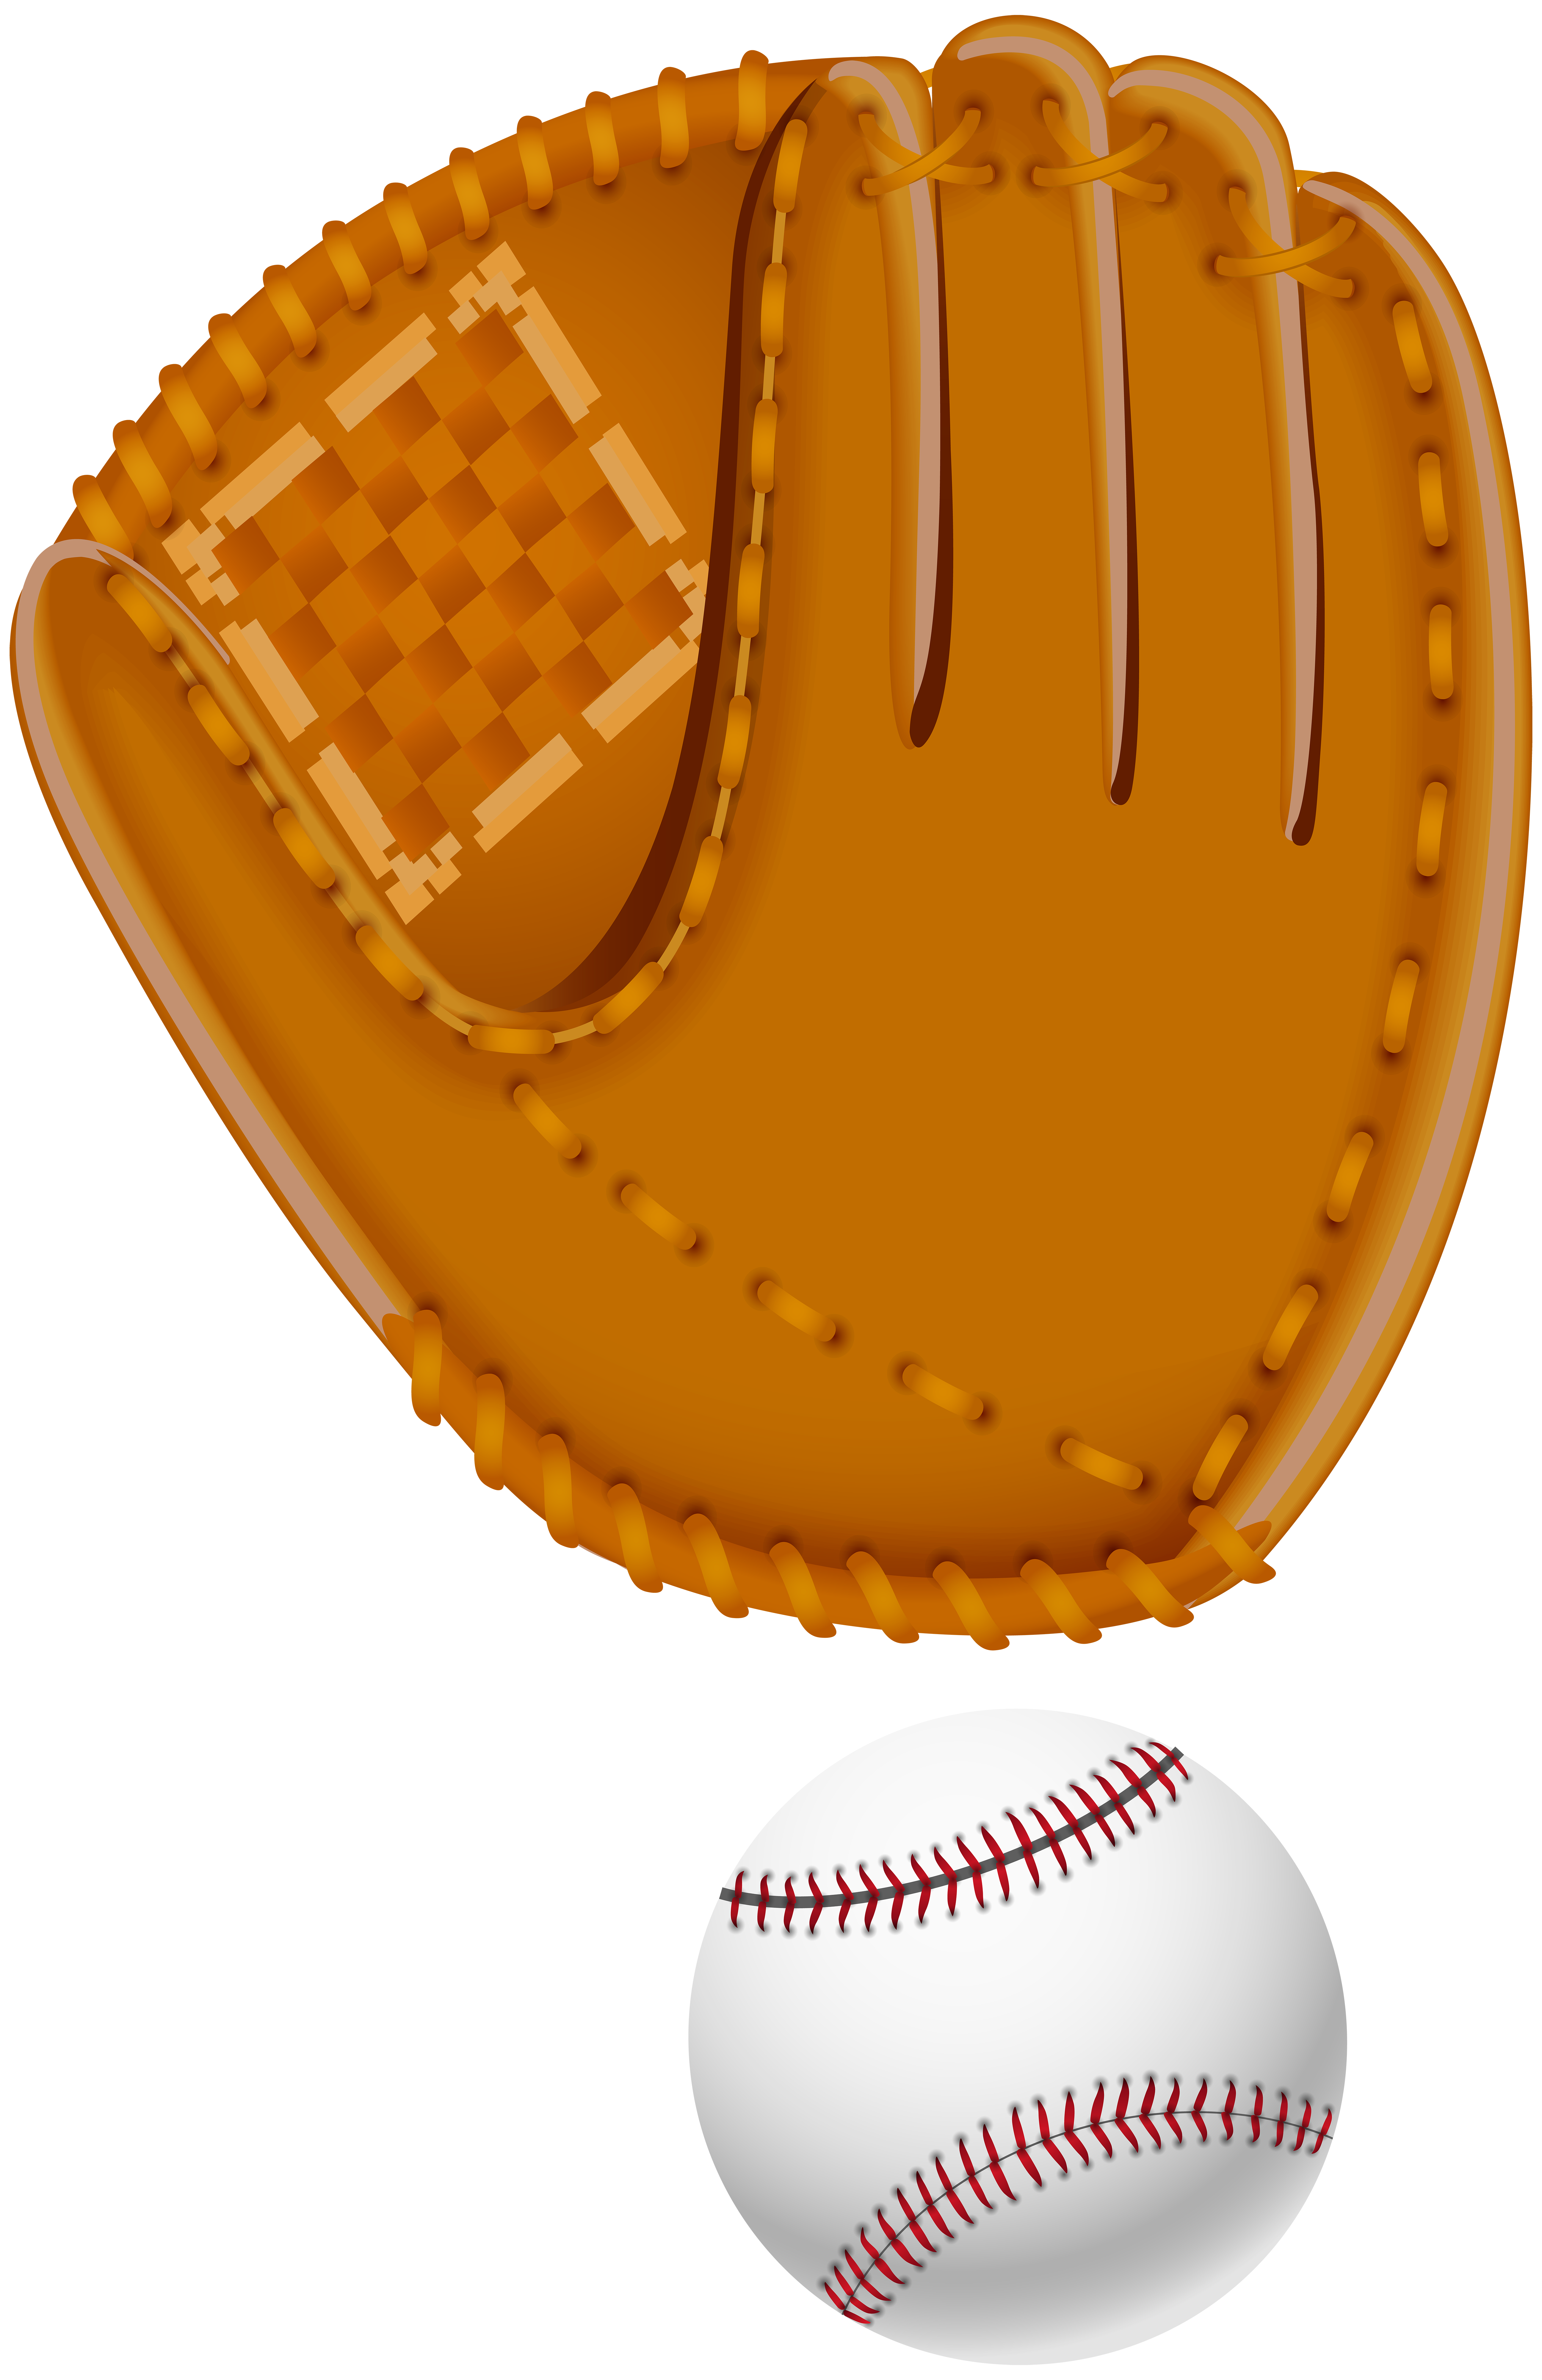 Baseball mitt clipart image black and white Baseball Glove Clip Art Image | Gallery Yopriceville - High-Quality ... image black and white